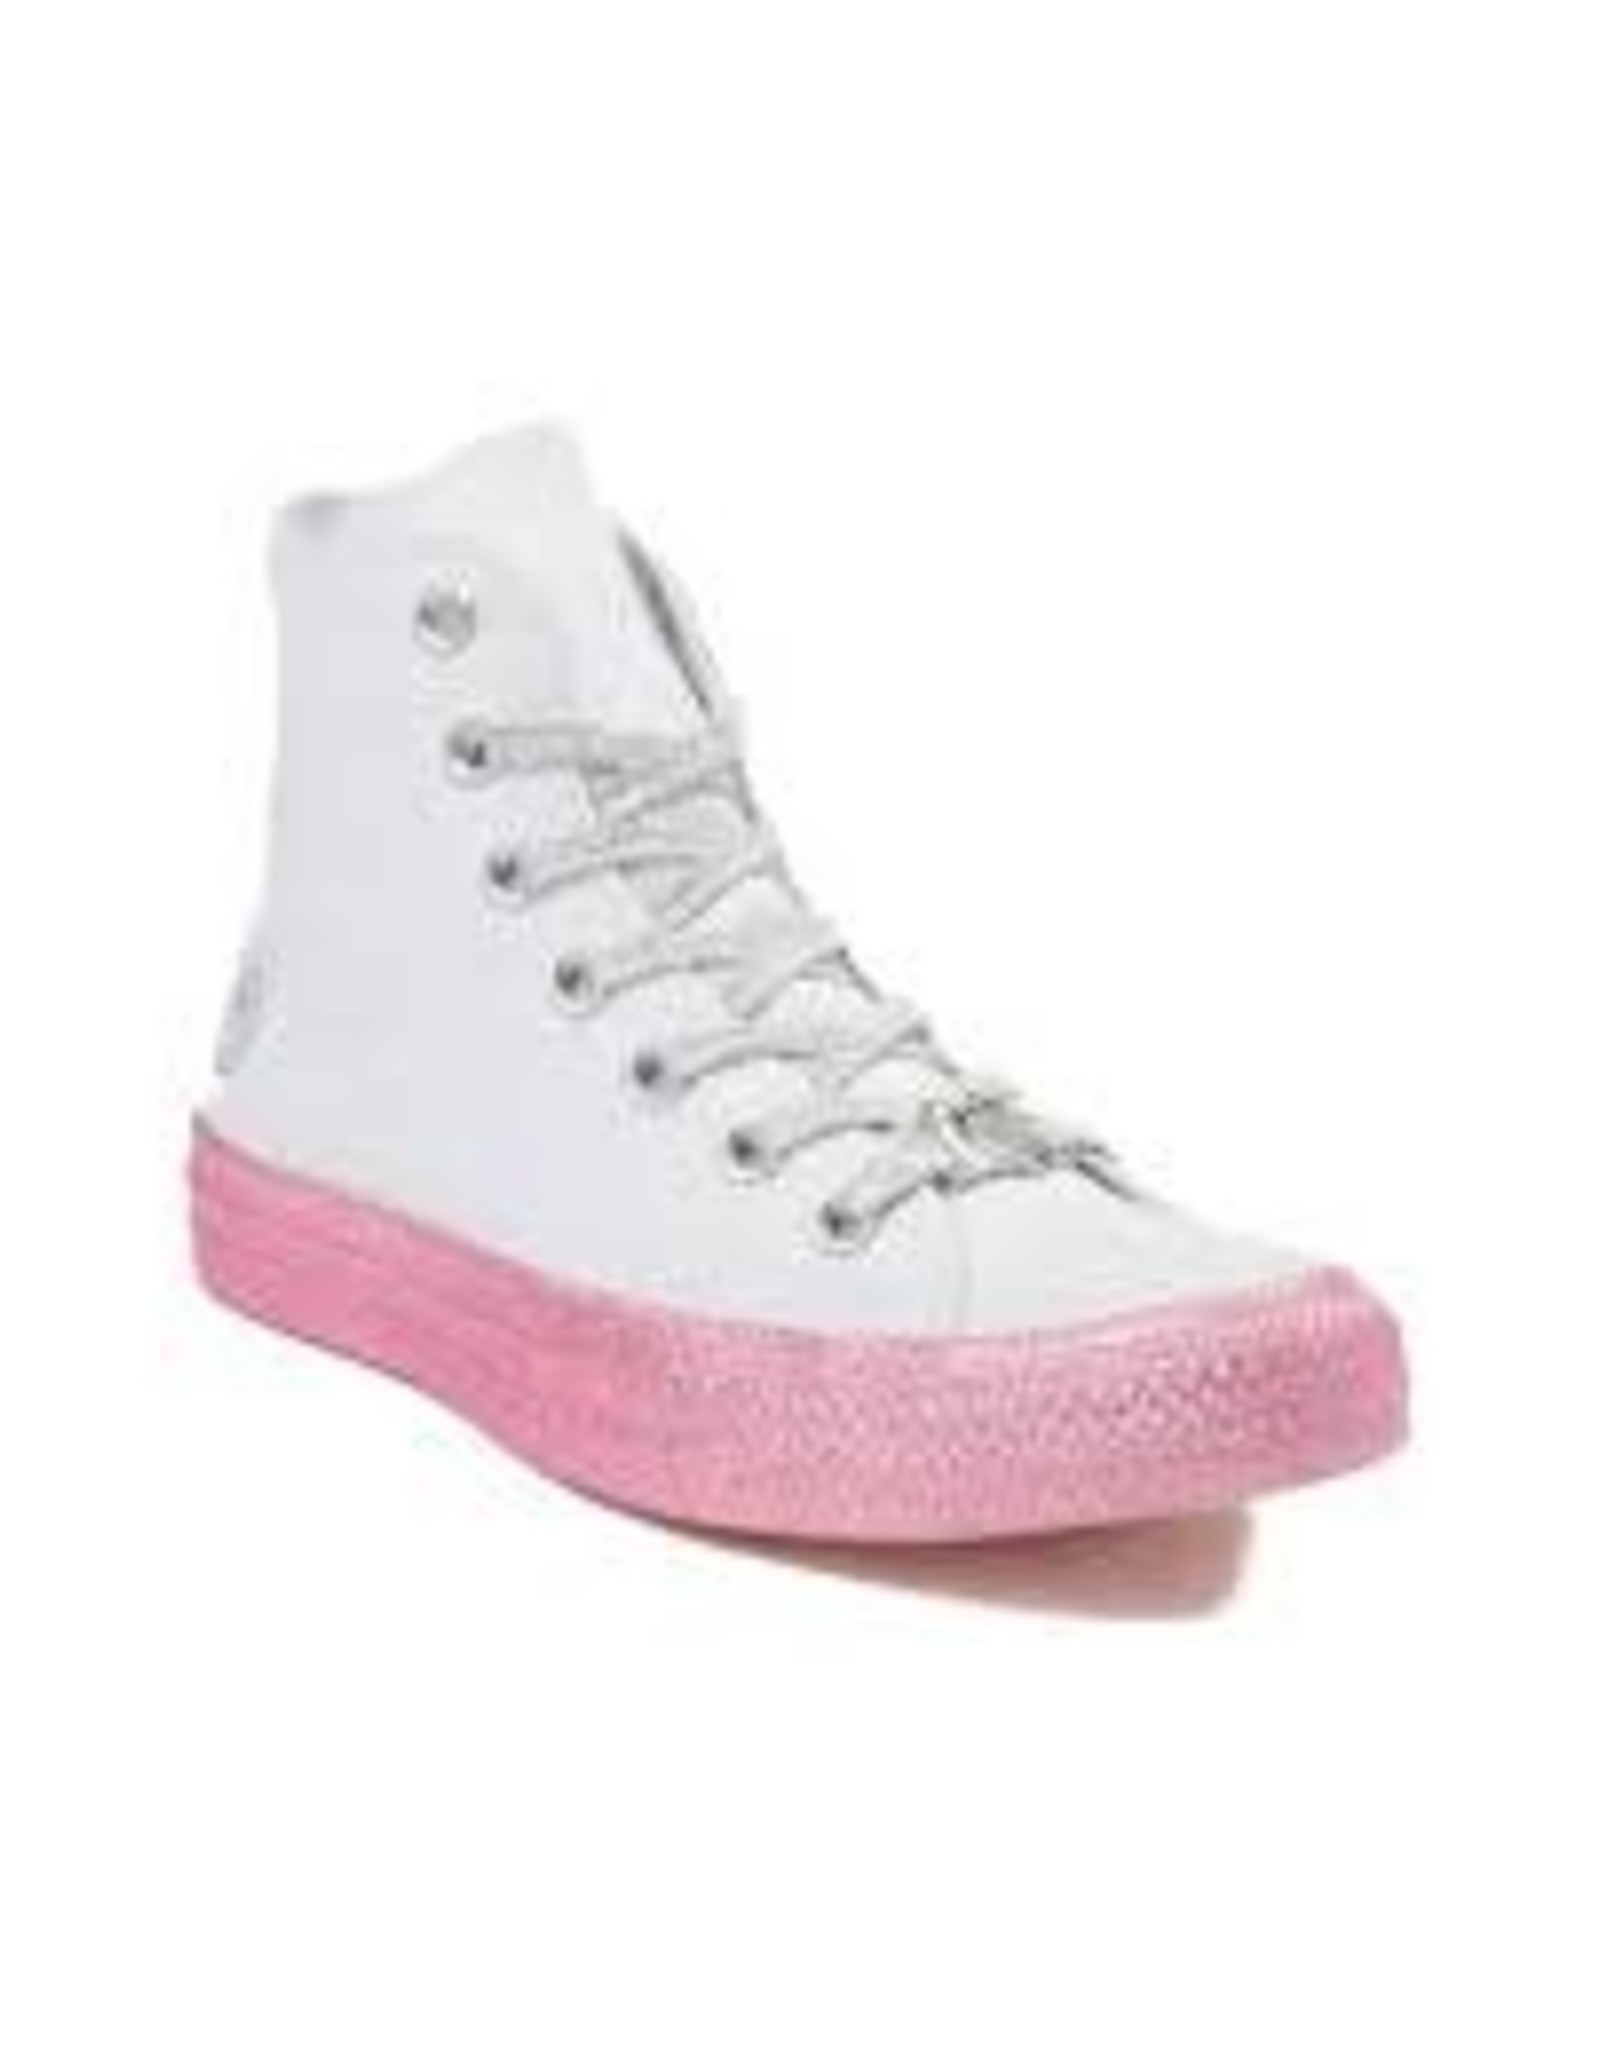 CONVERSE CHUCK TAYLOR AS HI MILEY CYRUS WHITE/PINK DOGWOOD/BLACK C18MCW-162239C